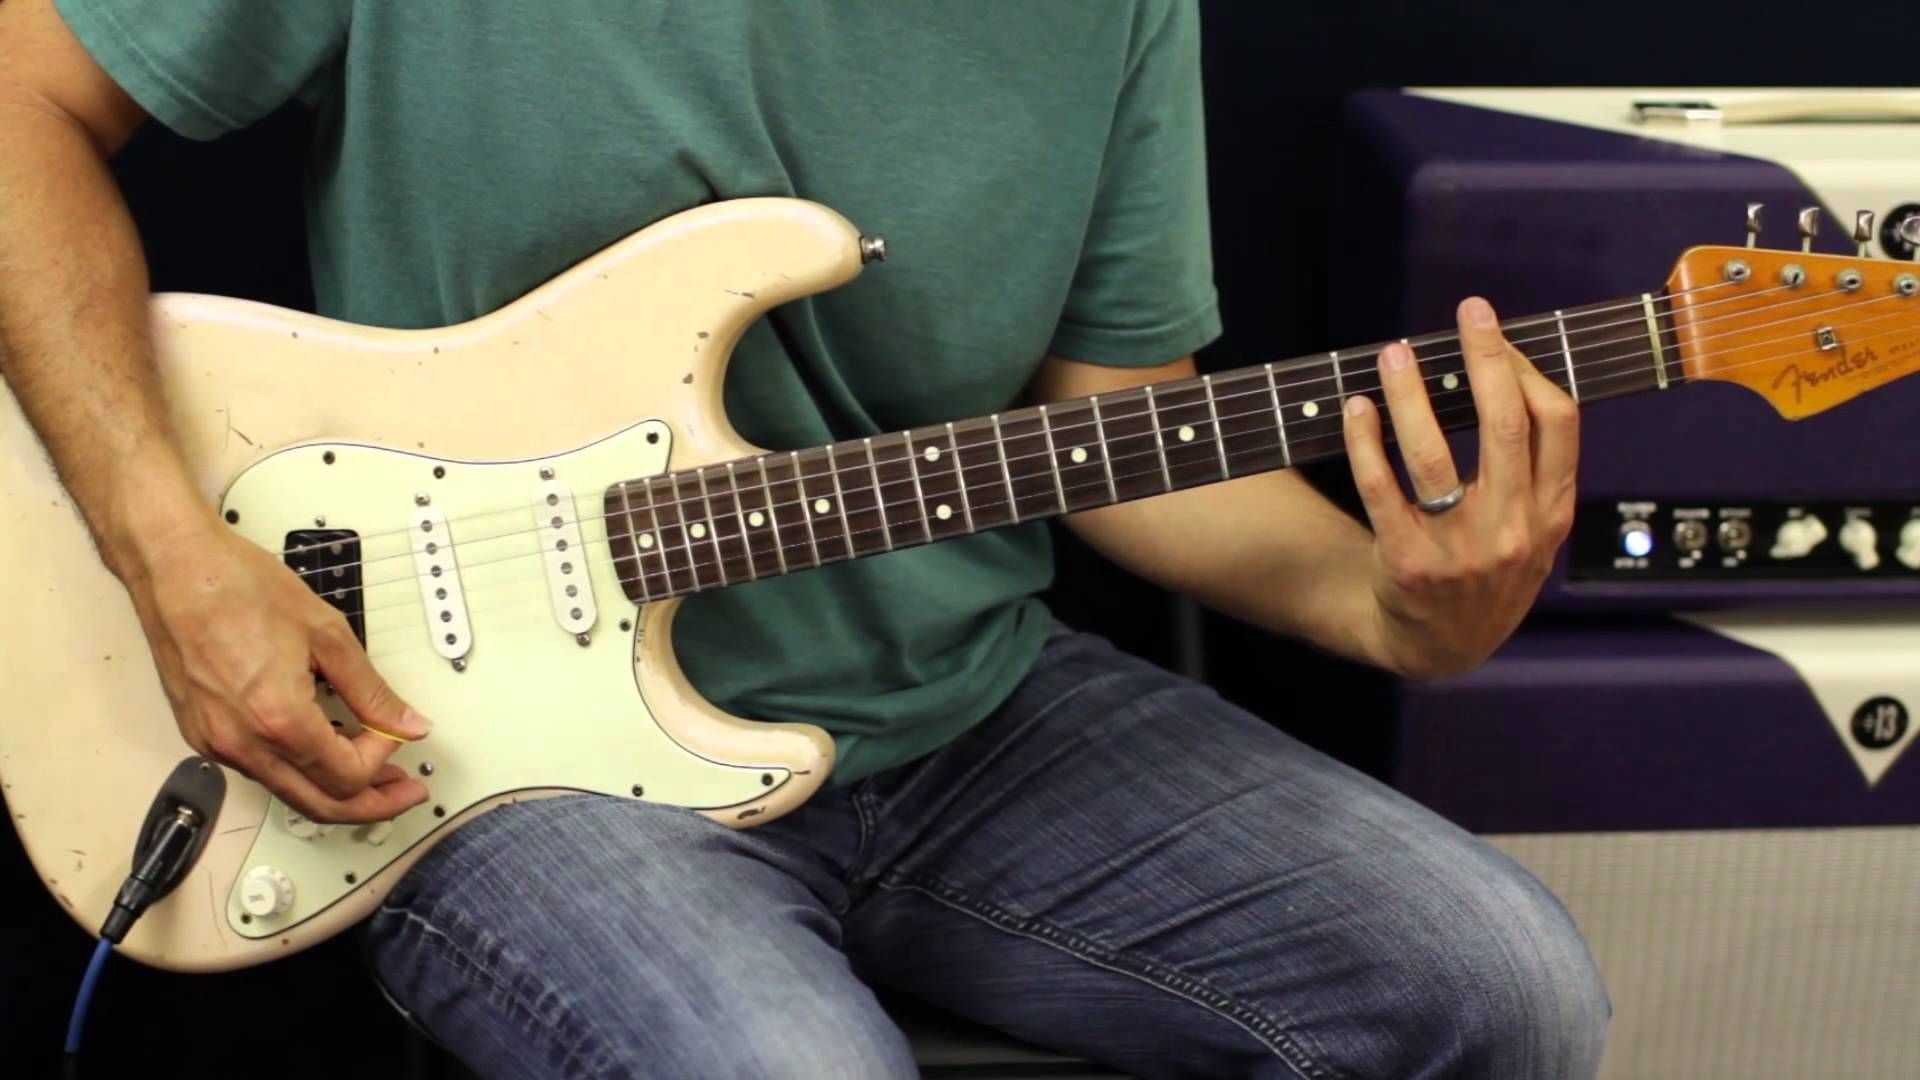 Rush Limelight How To Play On Guitar Guitar Lesson